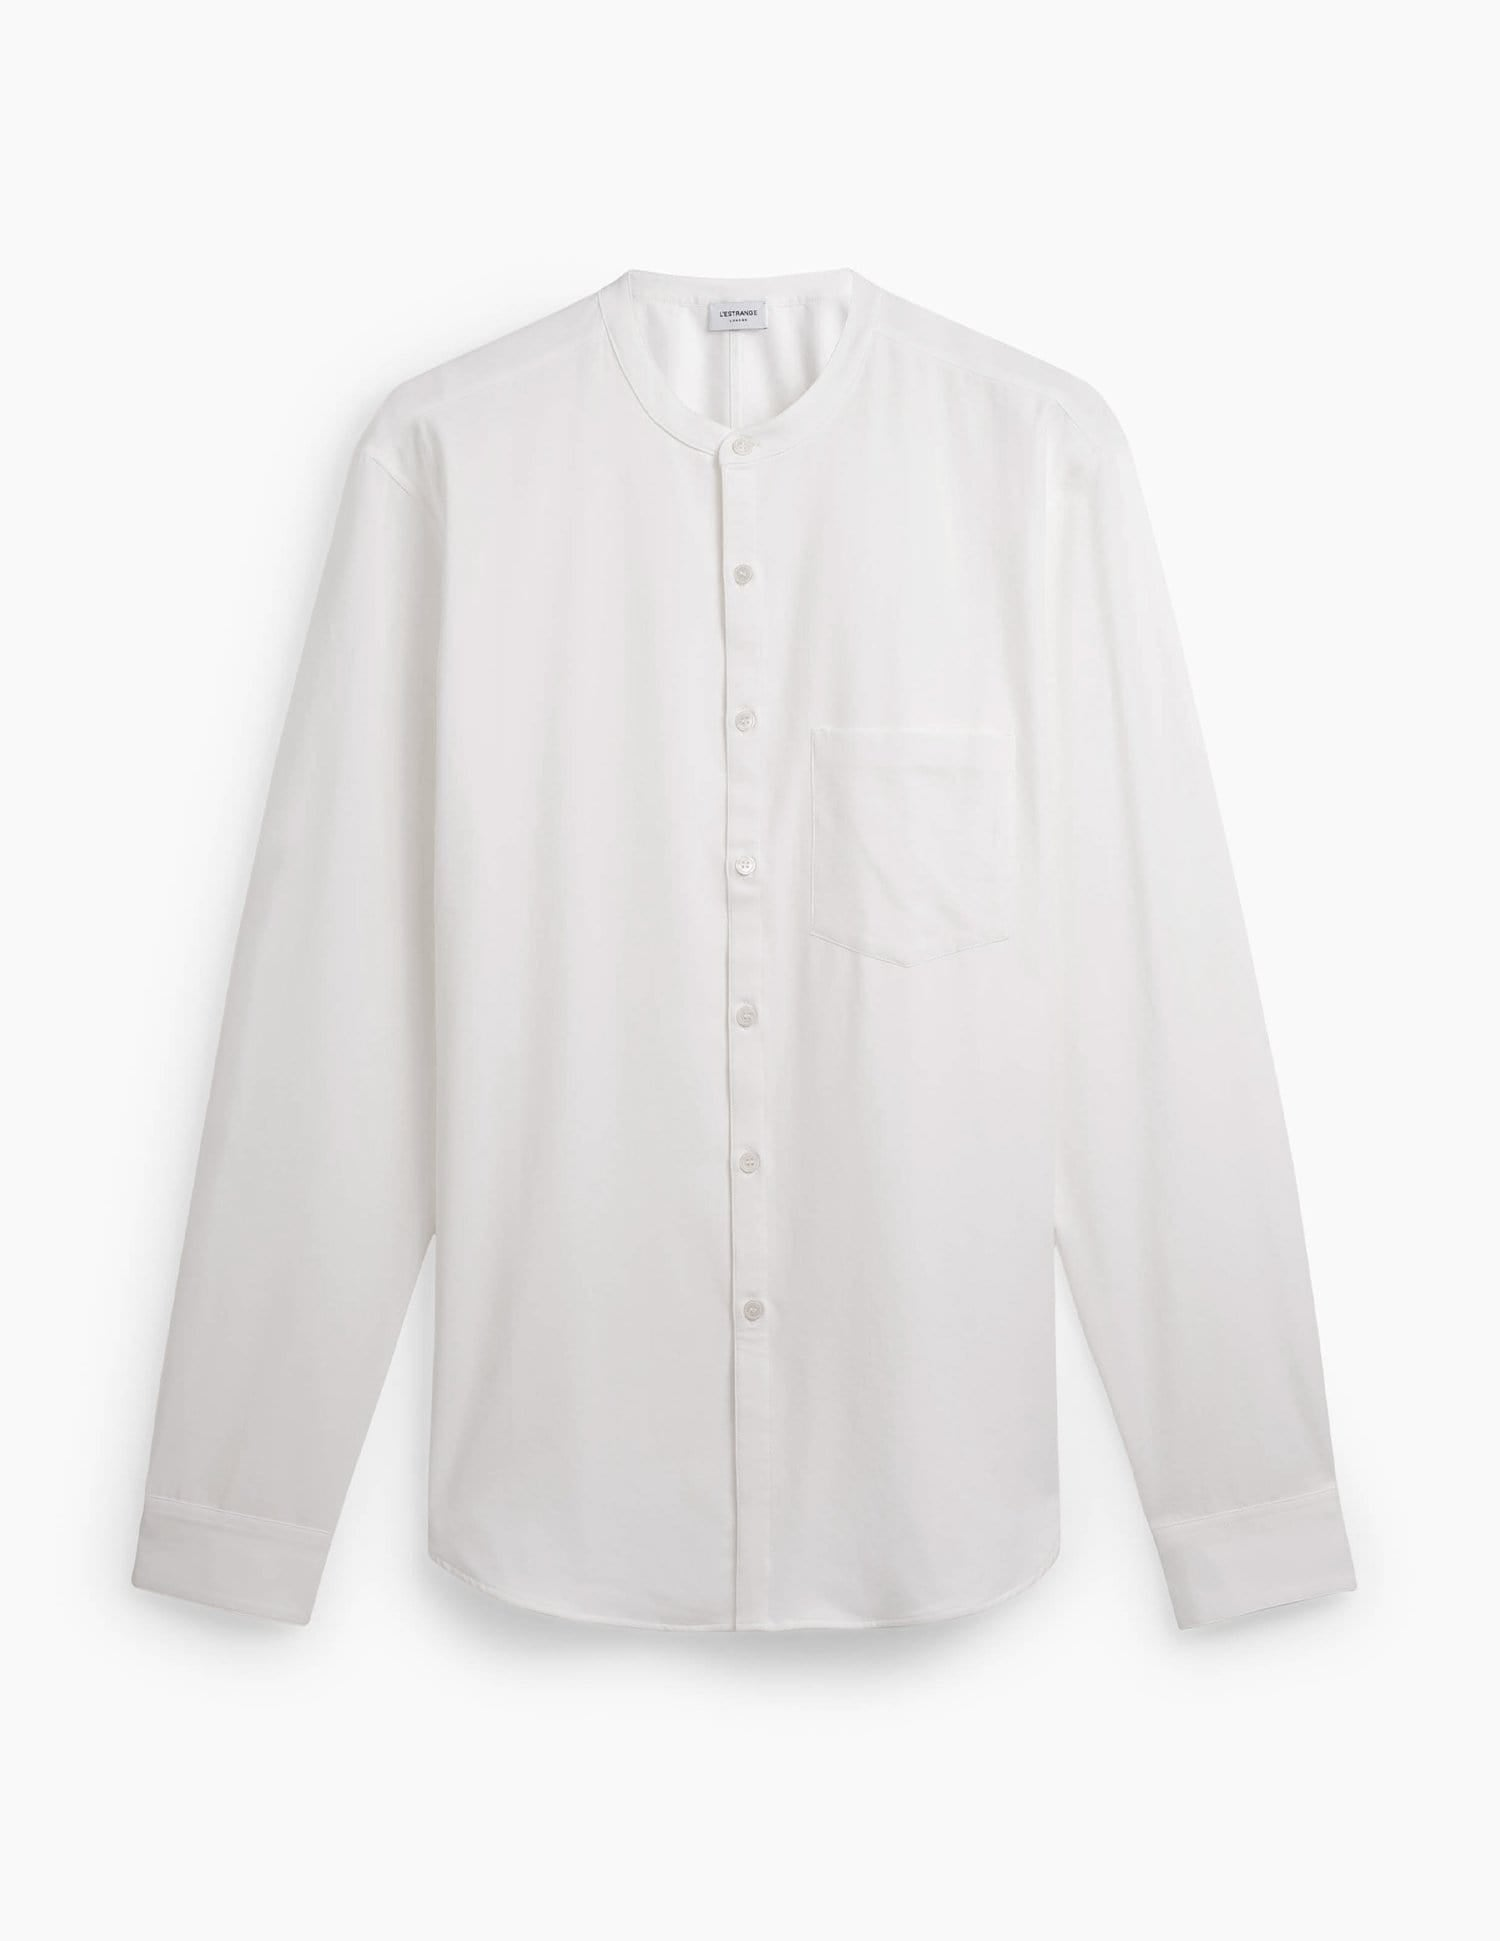 The All Day Shirt || White | Collarless